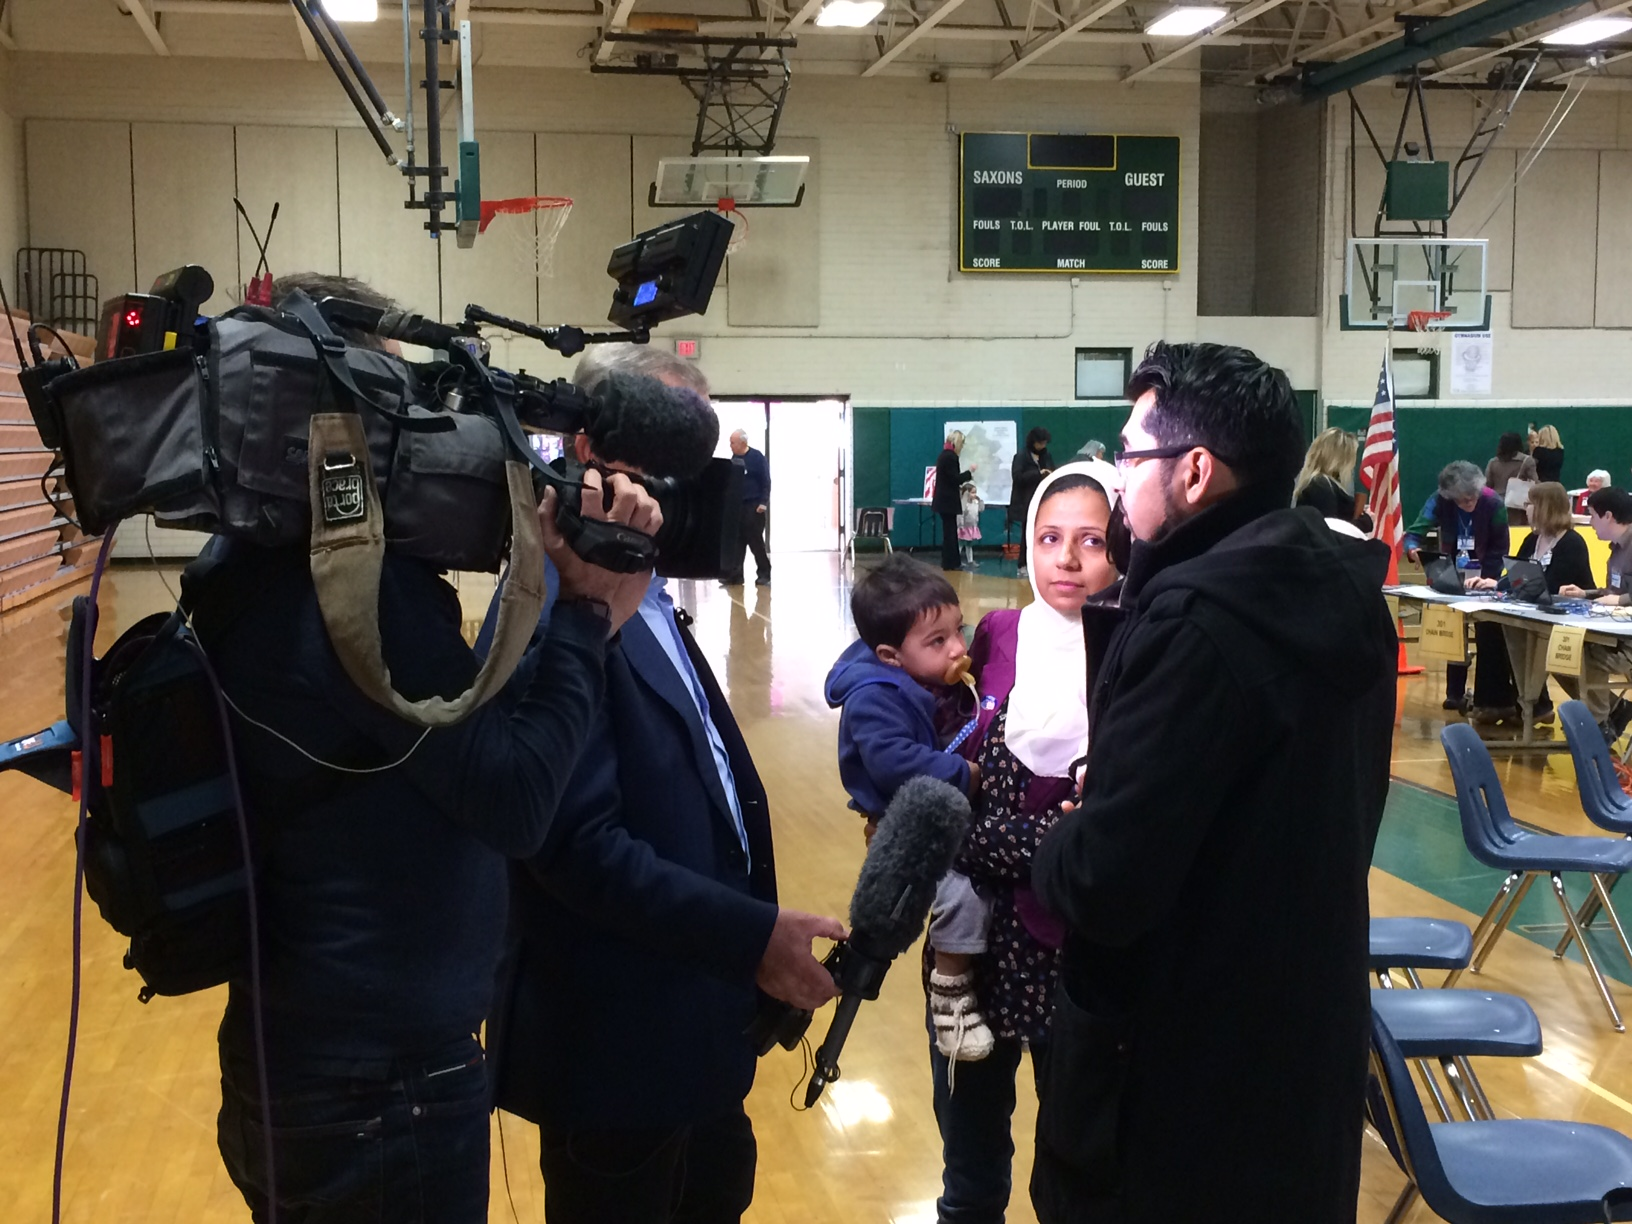 Dr. Chaudhry, with his wife and kids, interviews with SKYNews